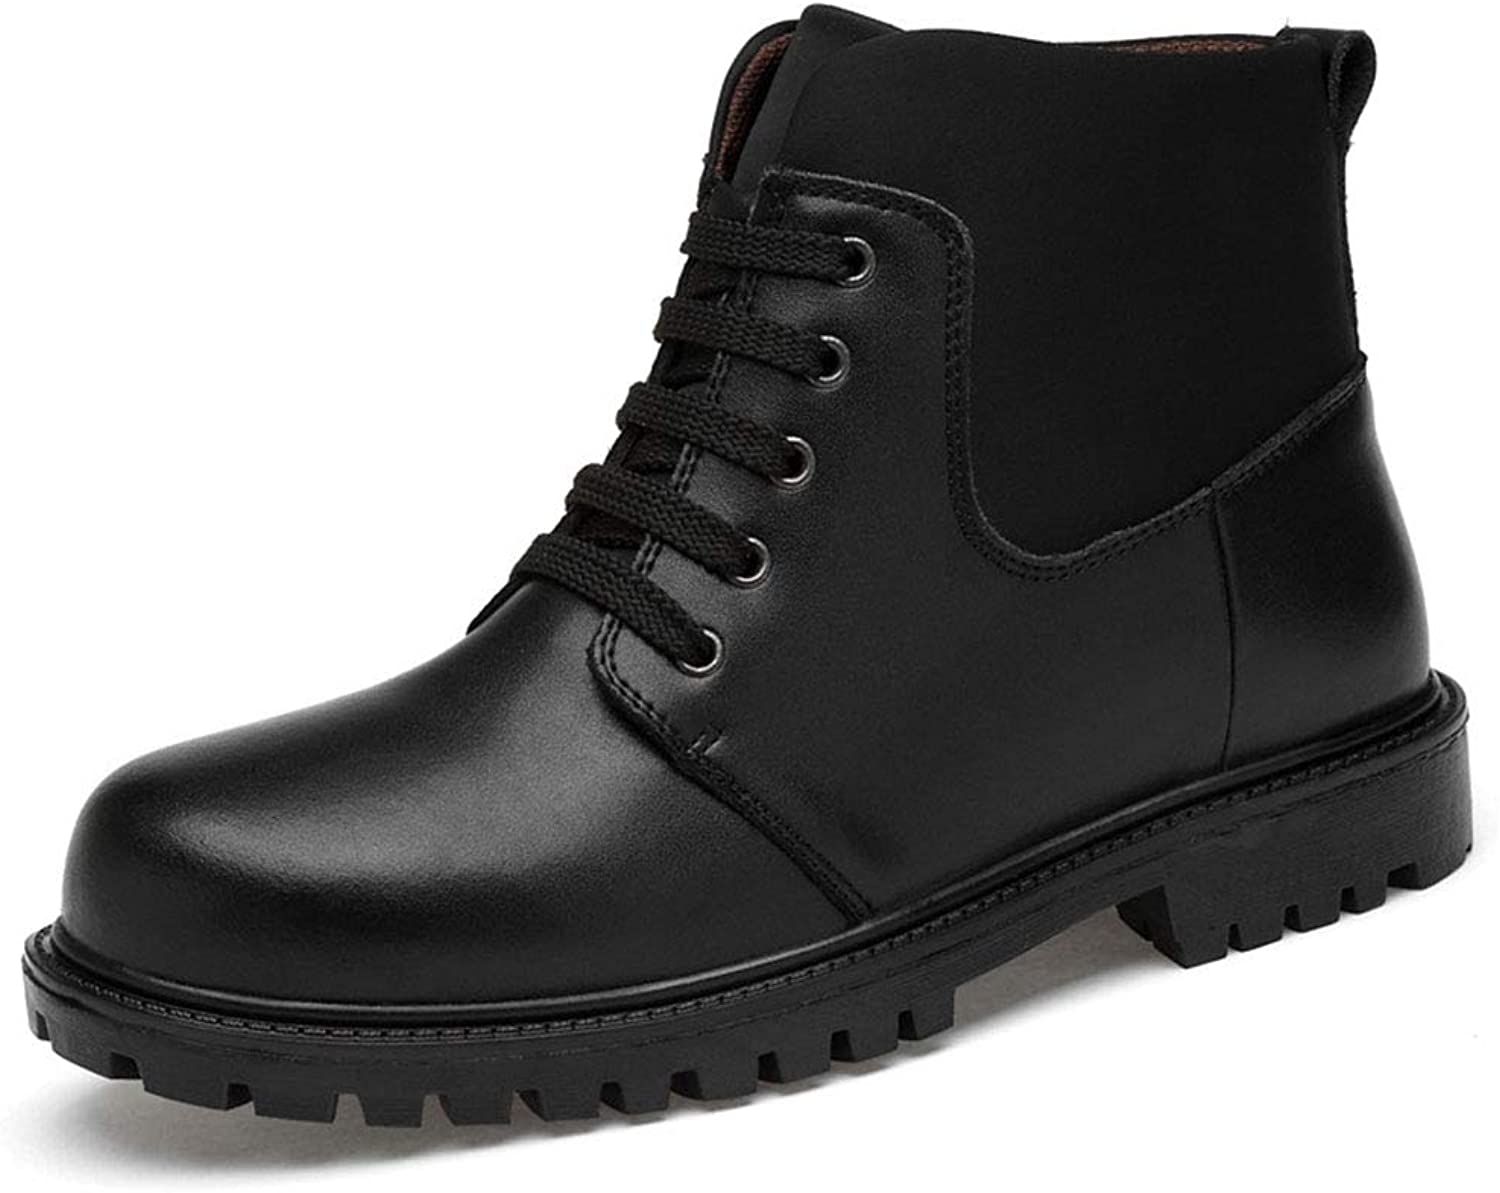 Men's shoes Men's Boots, Leather Winter Warm shoes Motorcycle Mens Ankle Boot Martins Booties Autumn Men shoes For Party & Evening Men's Fashion Boots (color   A, Size   39)